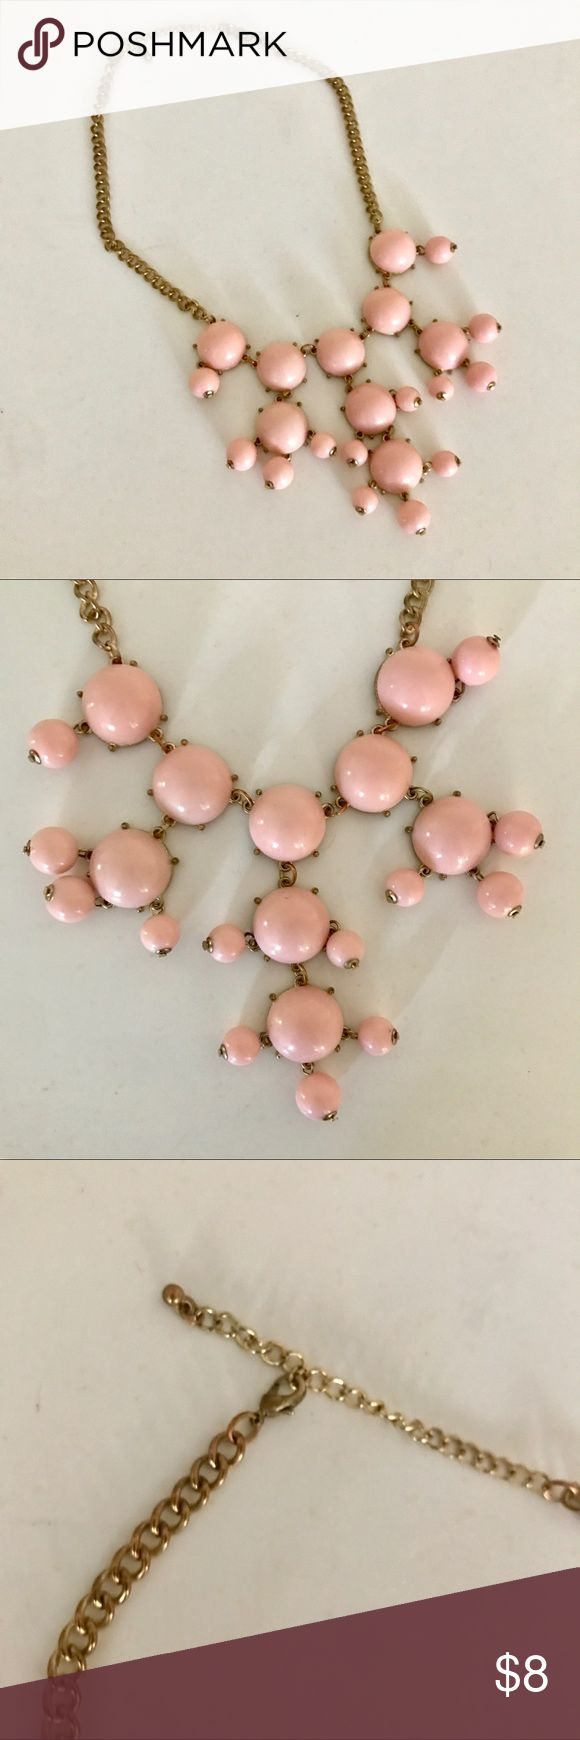 Pink Bubble Necklace Pink Bubble Necklace. Cute addition to any outfit💕 Jewelry Necklaces